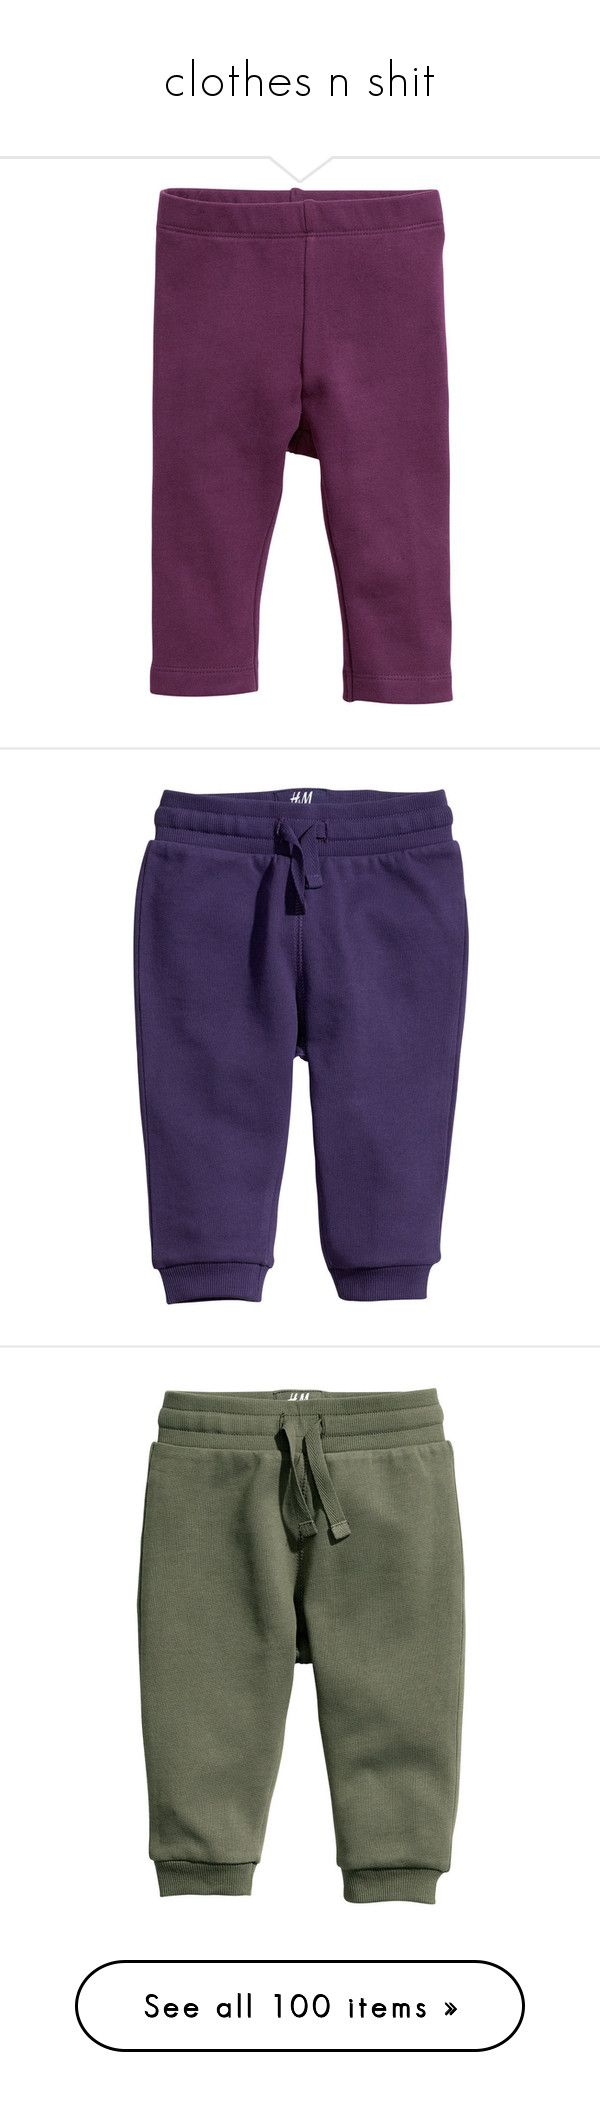 """clothes n shit"" by d-ynasty ❤ liked on Polyvore featuring pants, leggings, baby, h&m leggings, purple pants, purple leggings, h&m trousers, h&m pants, kids and baby clothes"